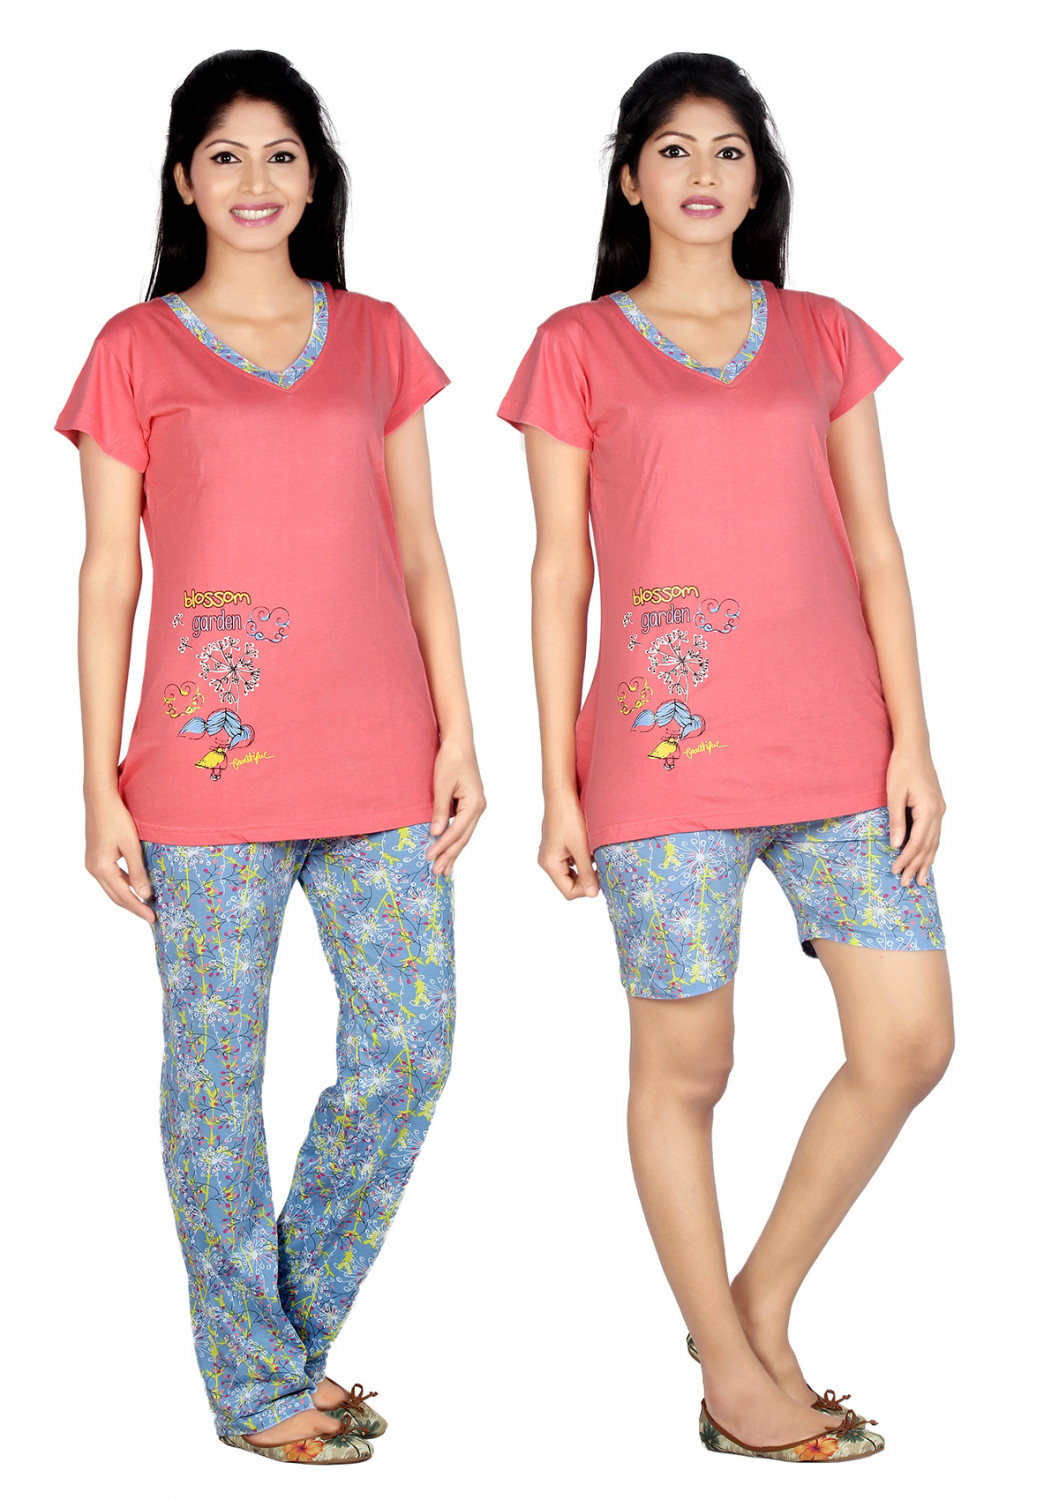 782c095c3695a2 Carrel Imported Cotton Hosiery Fabric Printed Round Neck Top